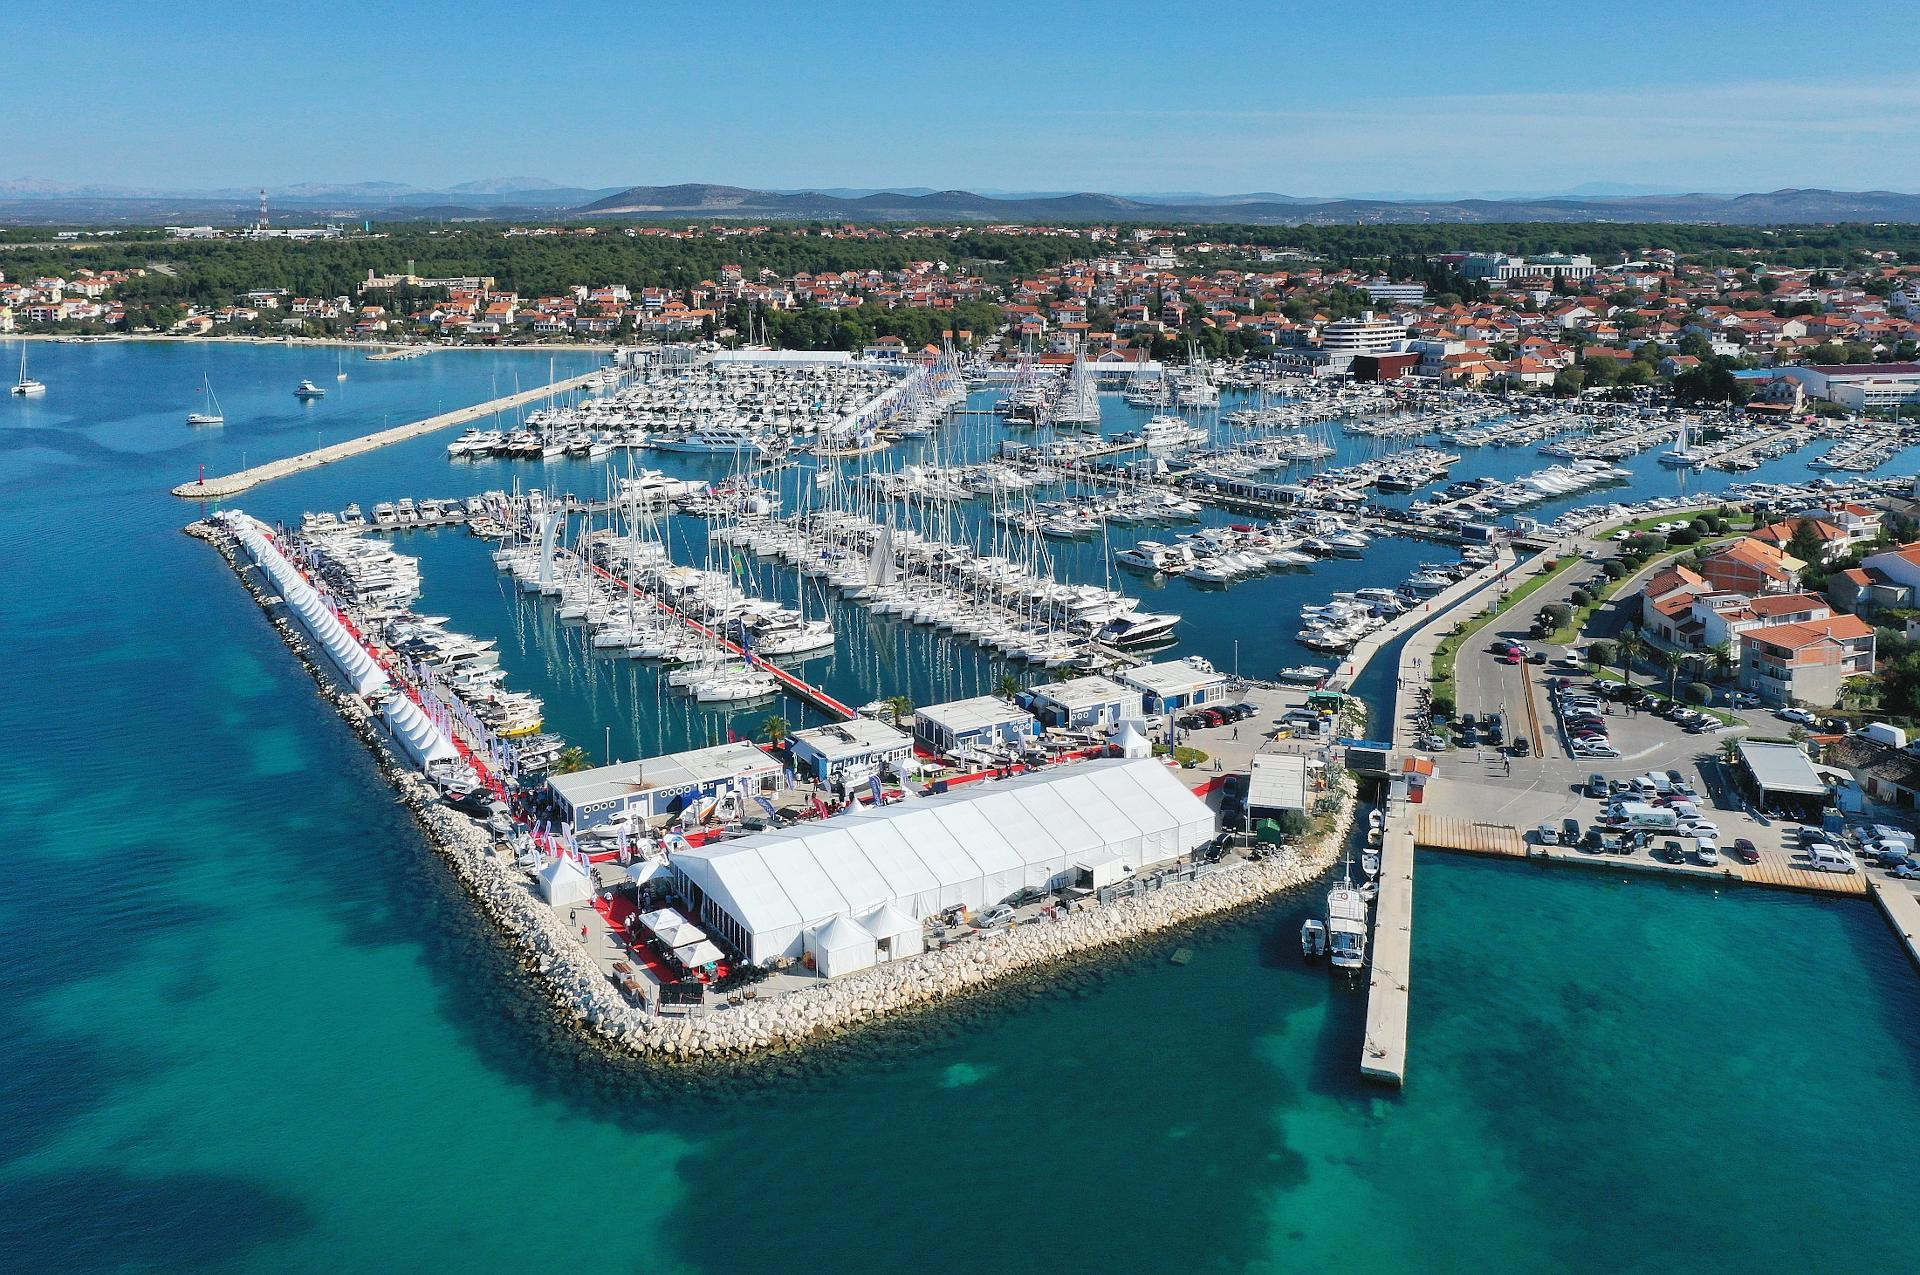 Croatia's Largest Boat Show and Central Europe's In-water Show